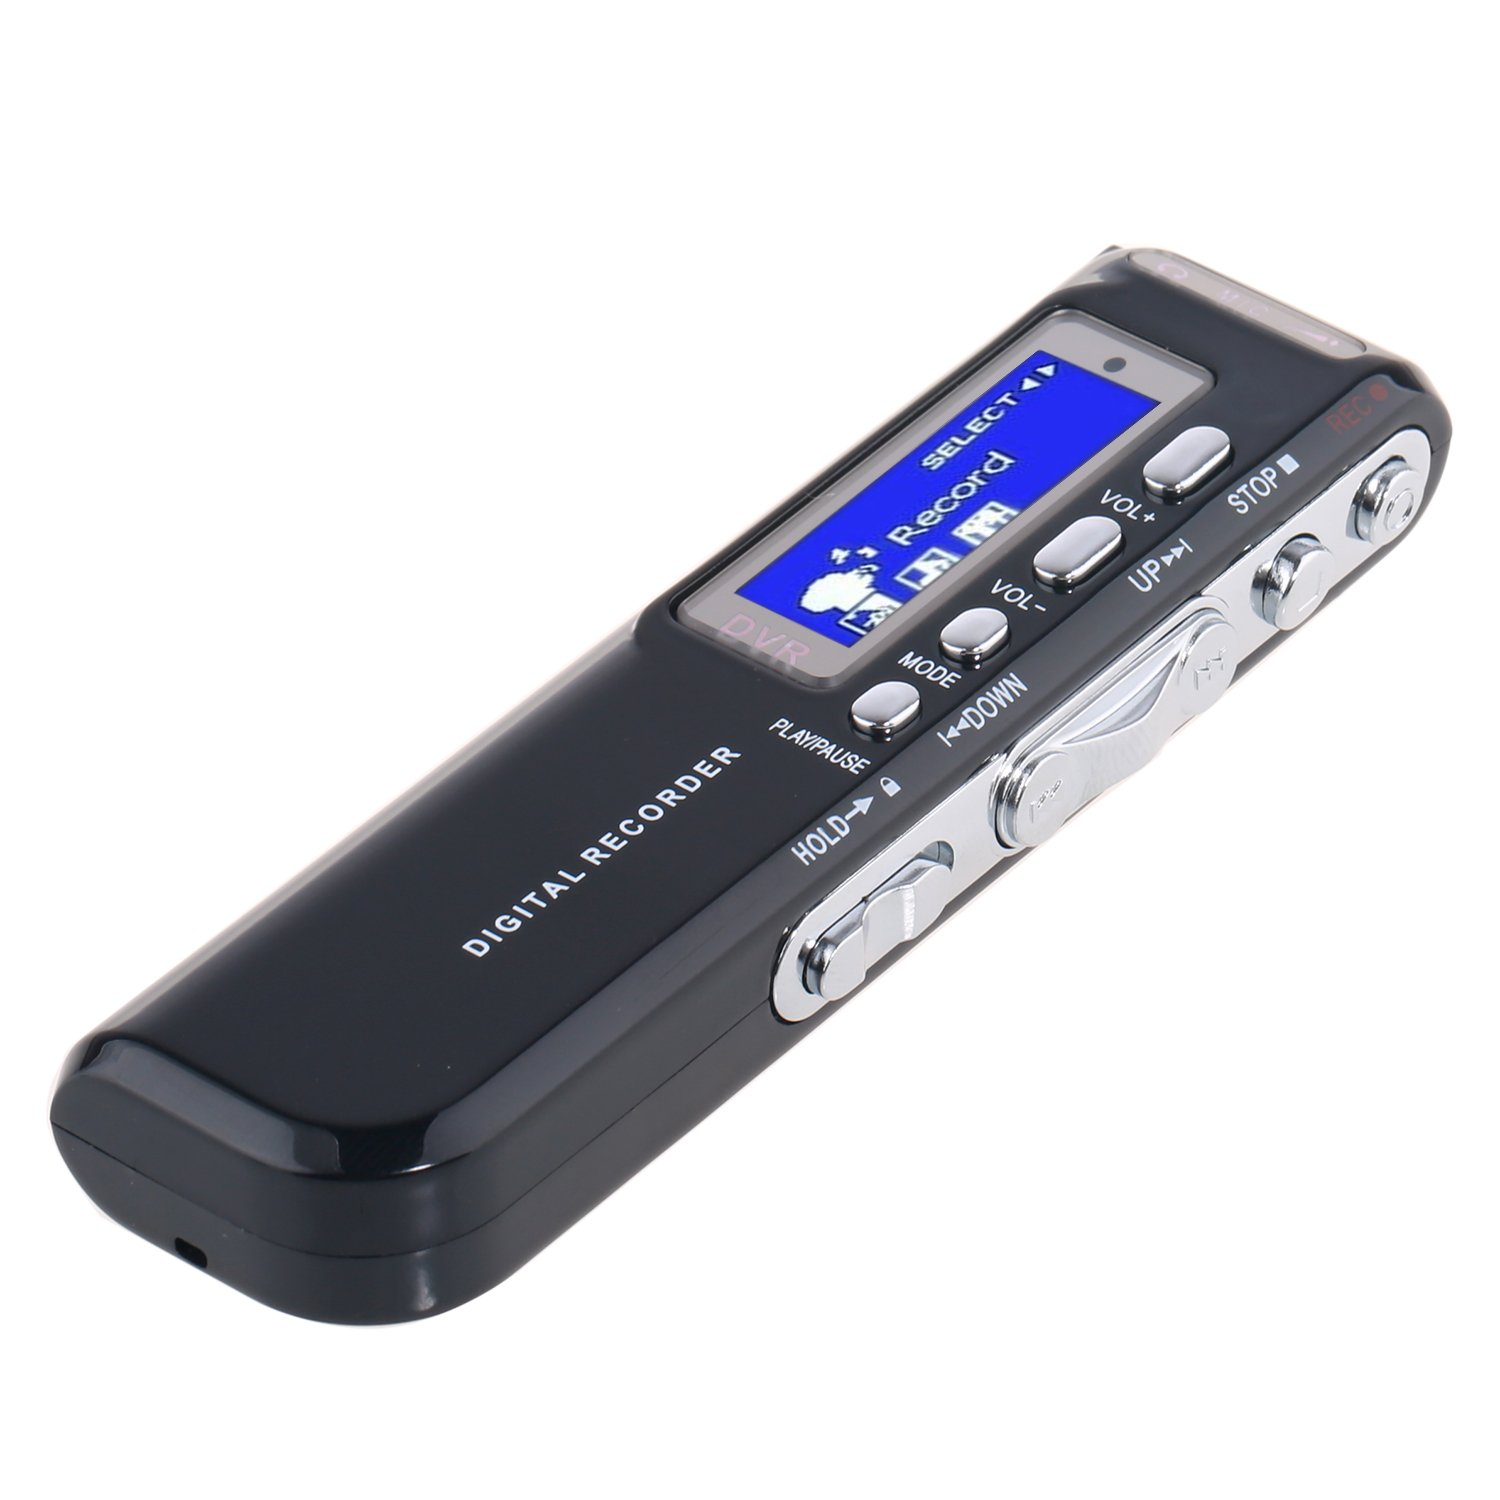 MonoDeal Digital Portable Voice Recorder and MP3 Player with USB Port - Black …